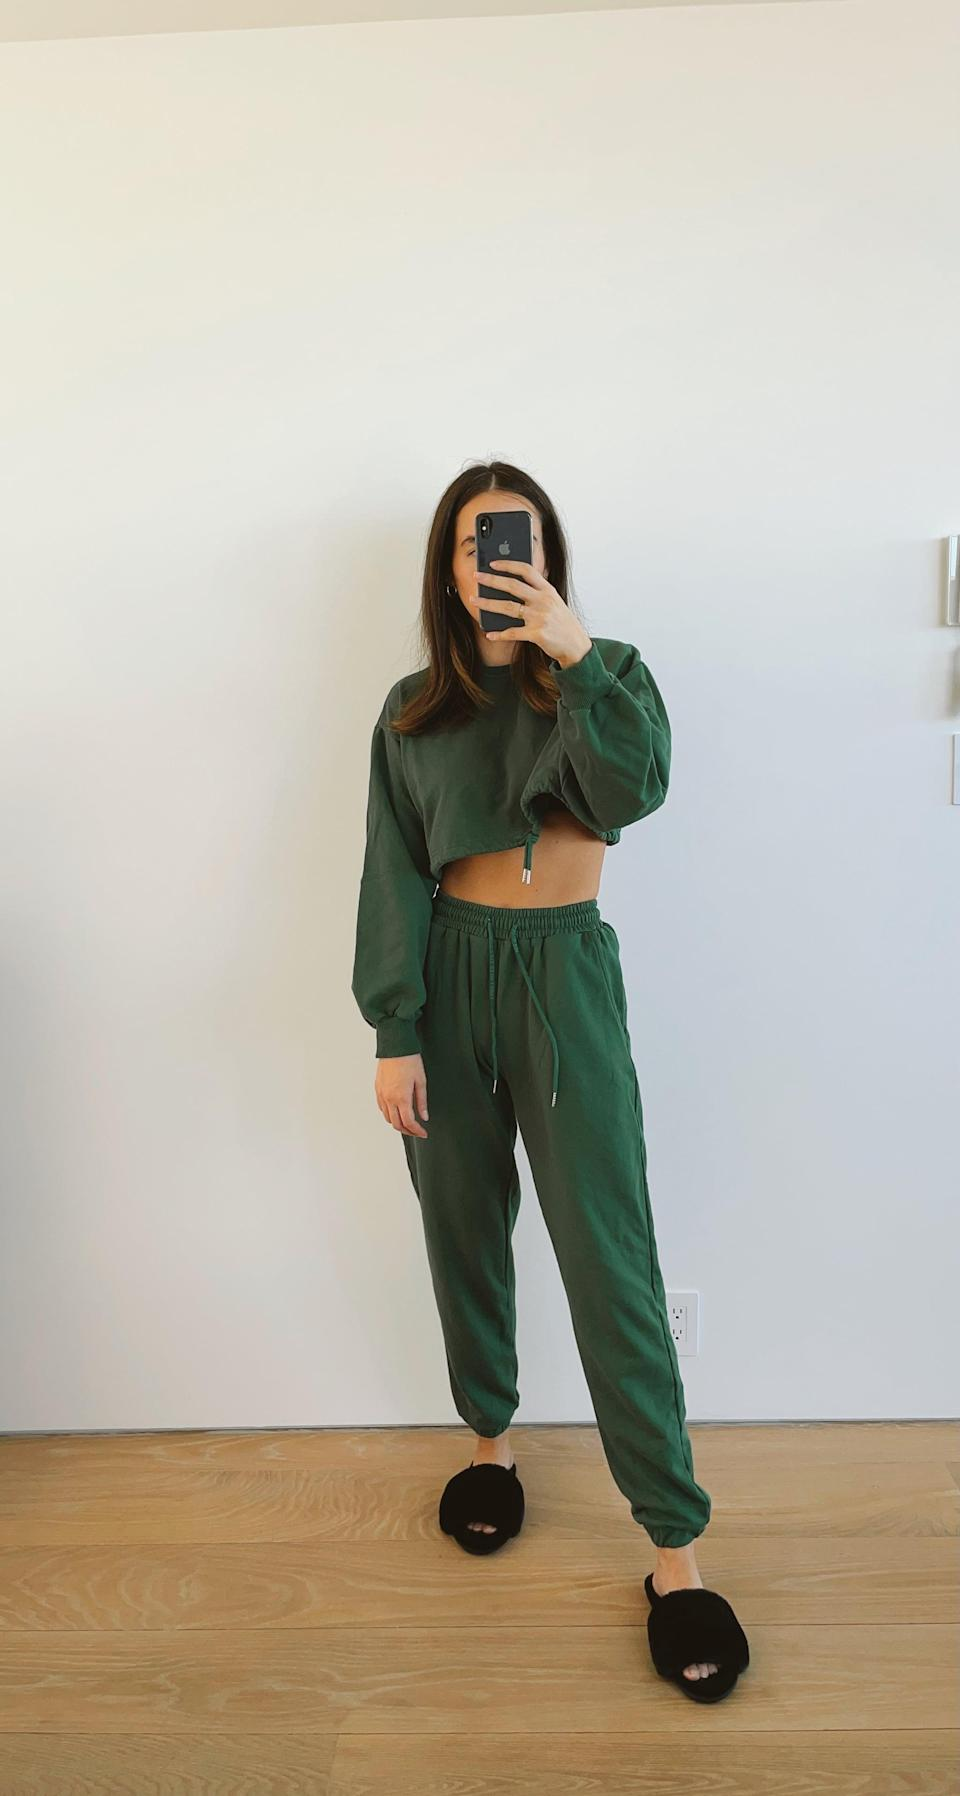 <p>I first fell in love with this dark green <span>Aoxjox Two-Piece Sweat Set</span> ($38) because of the color, but after I tried it on, I knew it was going to become one of my favorite outfits to wear on repeat. The pants are high waisted (just how I like them) and the sweatshirt sleeves are on the longer side, which I absolutely love. Not only that, but it looks way more expensive than its $38 price tag. </p>